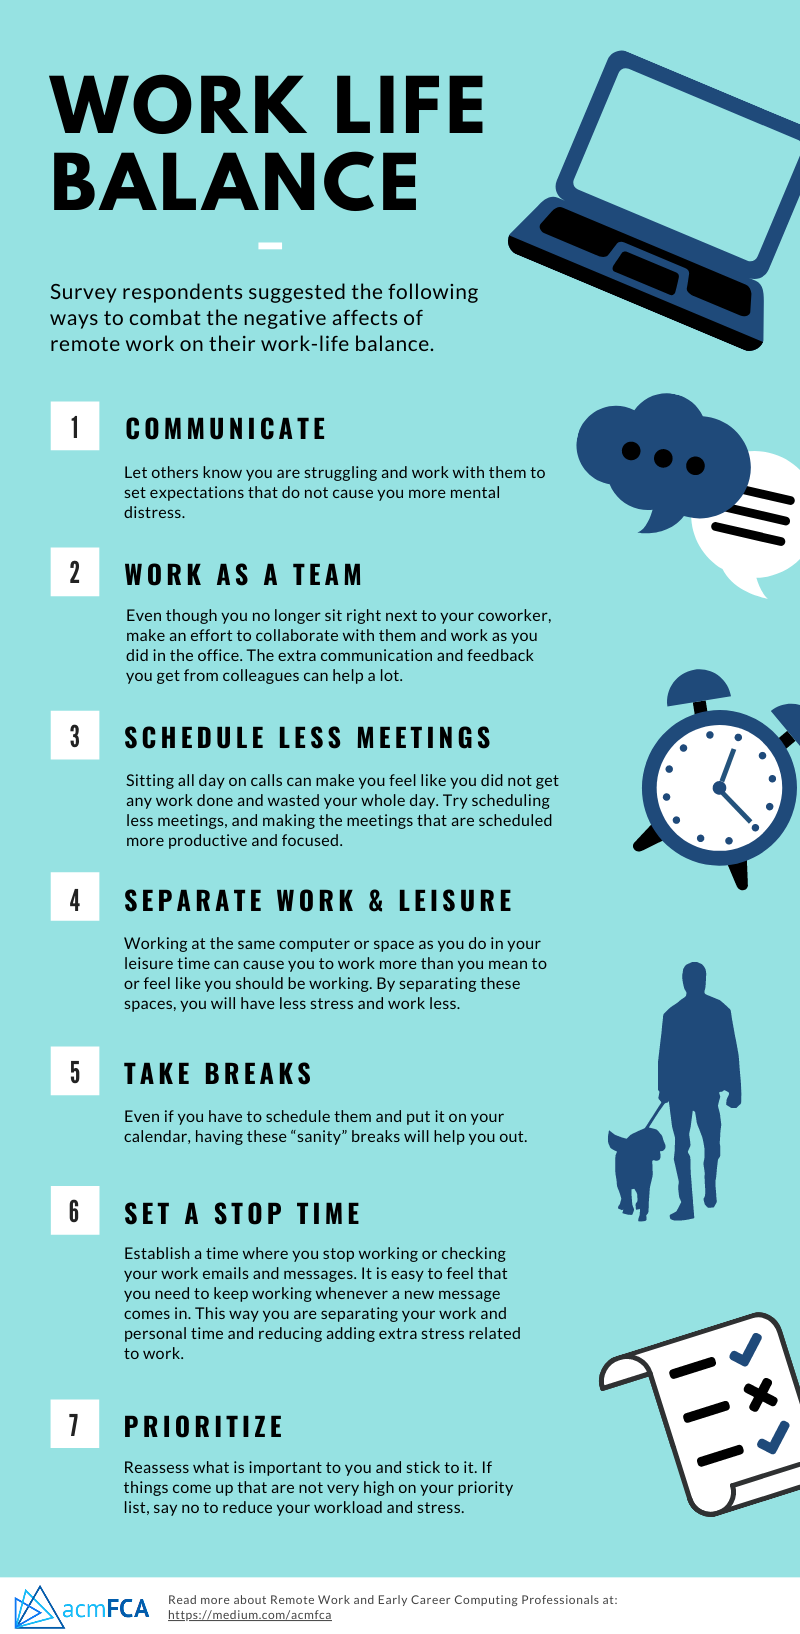 Effective strategies from respondents such as: communication, less meetings, schedule breaks, set a stop time, and prioritze.